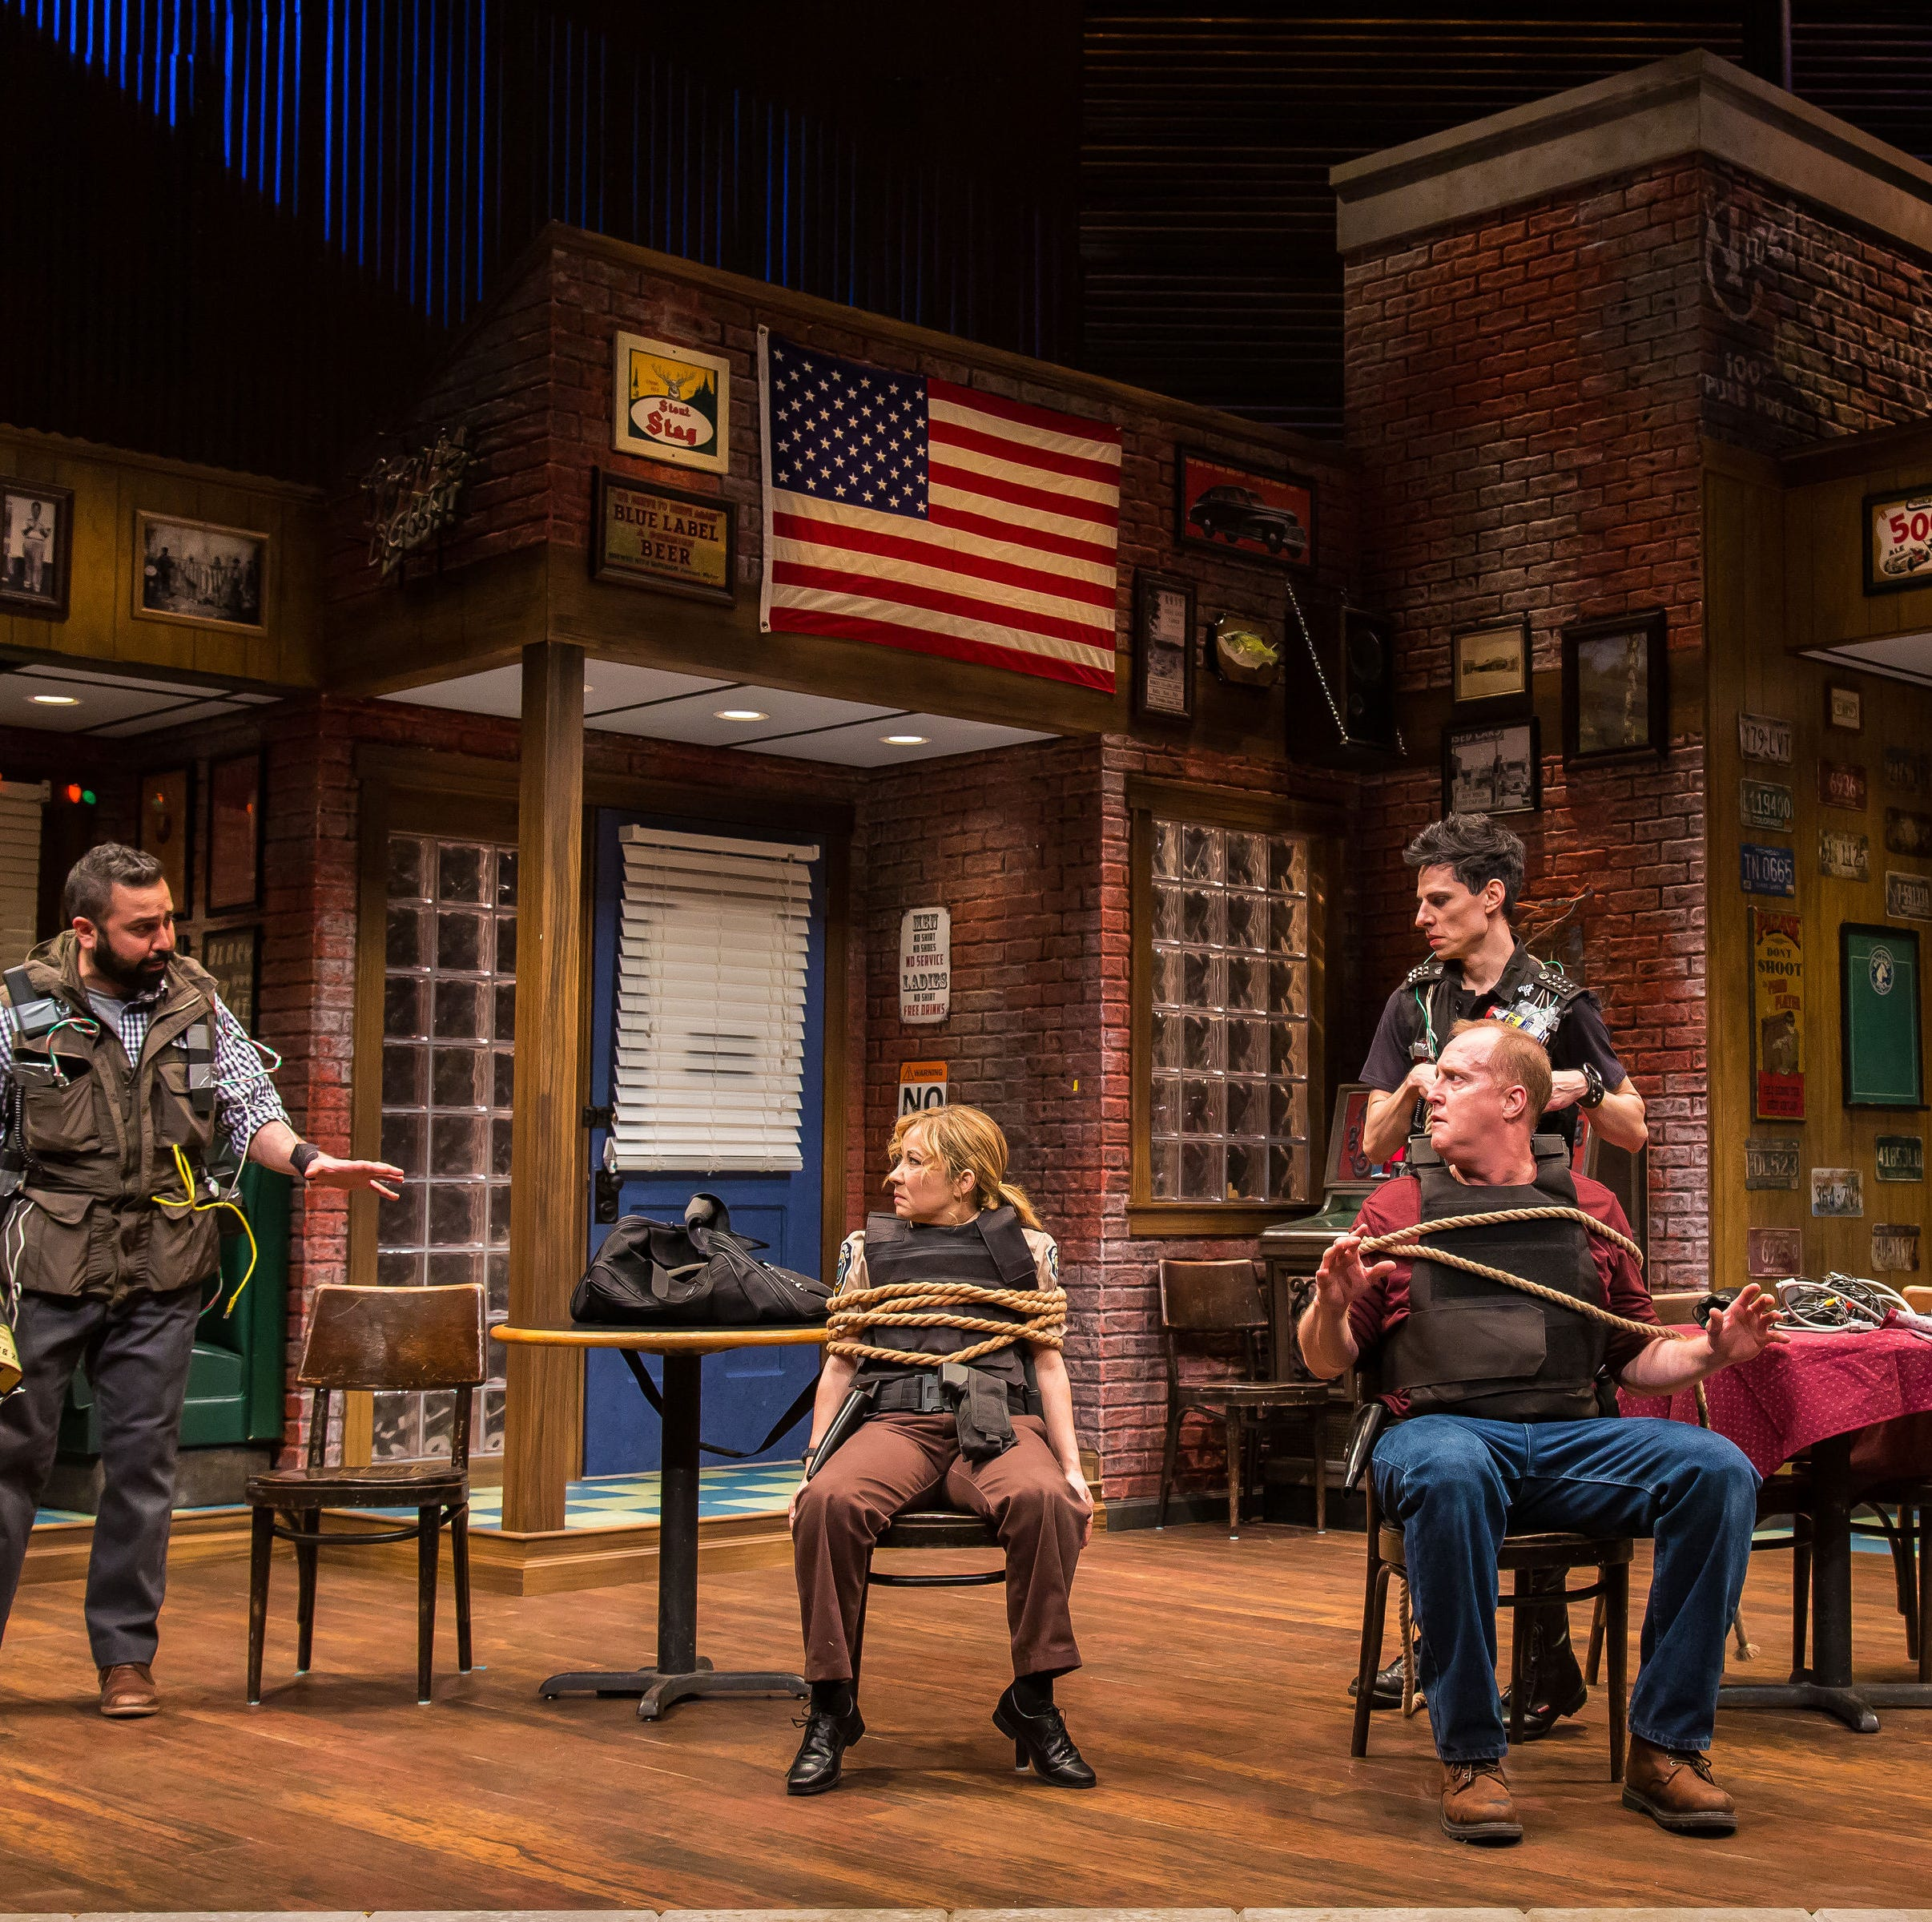 Theater review: 'Hard Cell' at Geva brings laughs while exploring racism, culture, religion